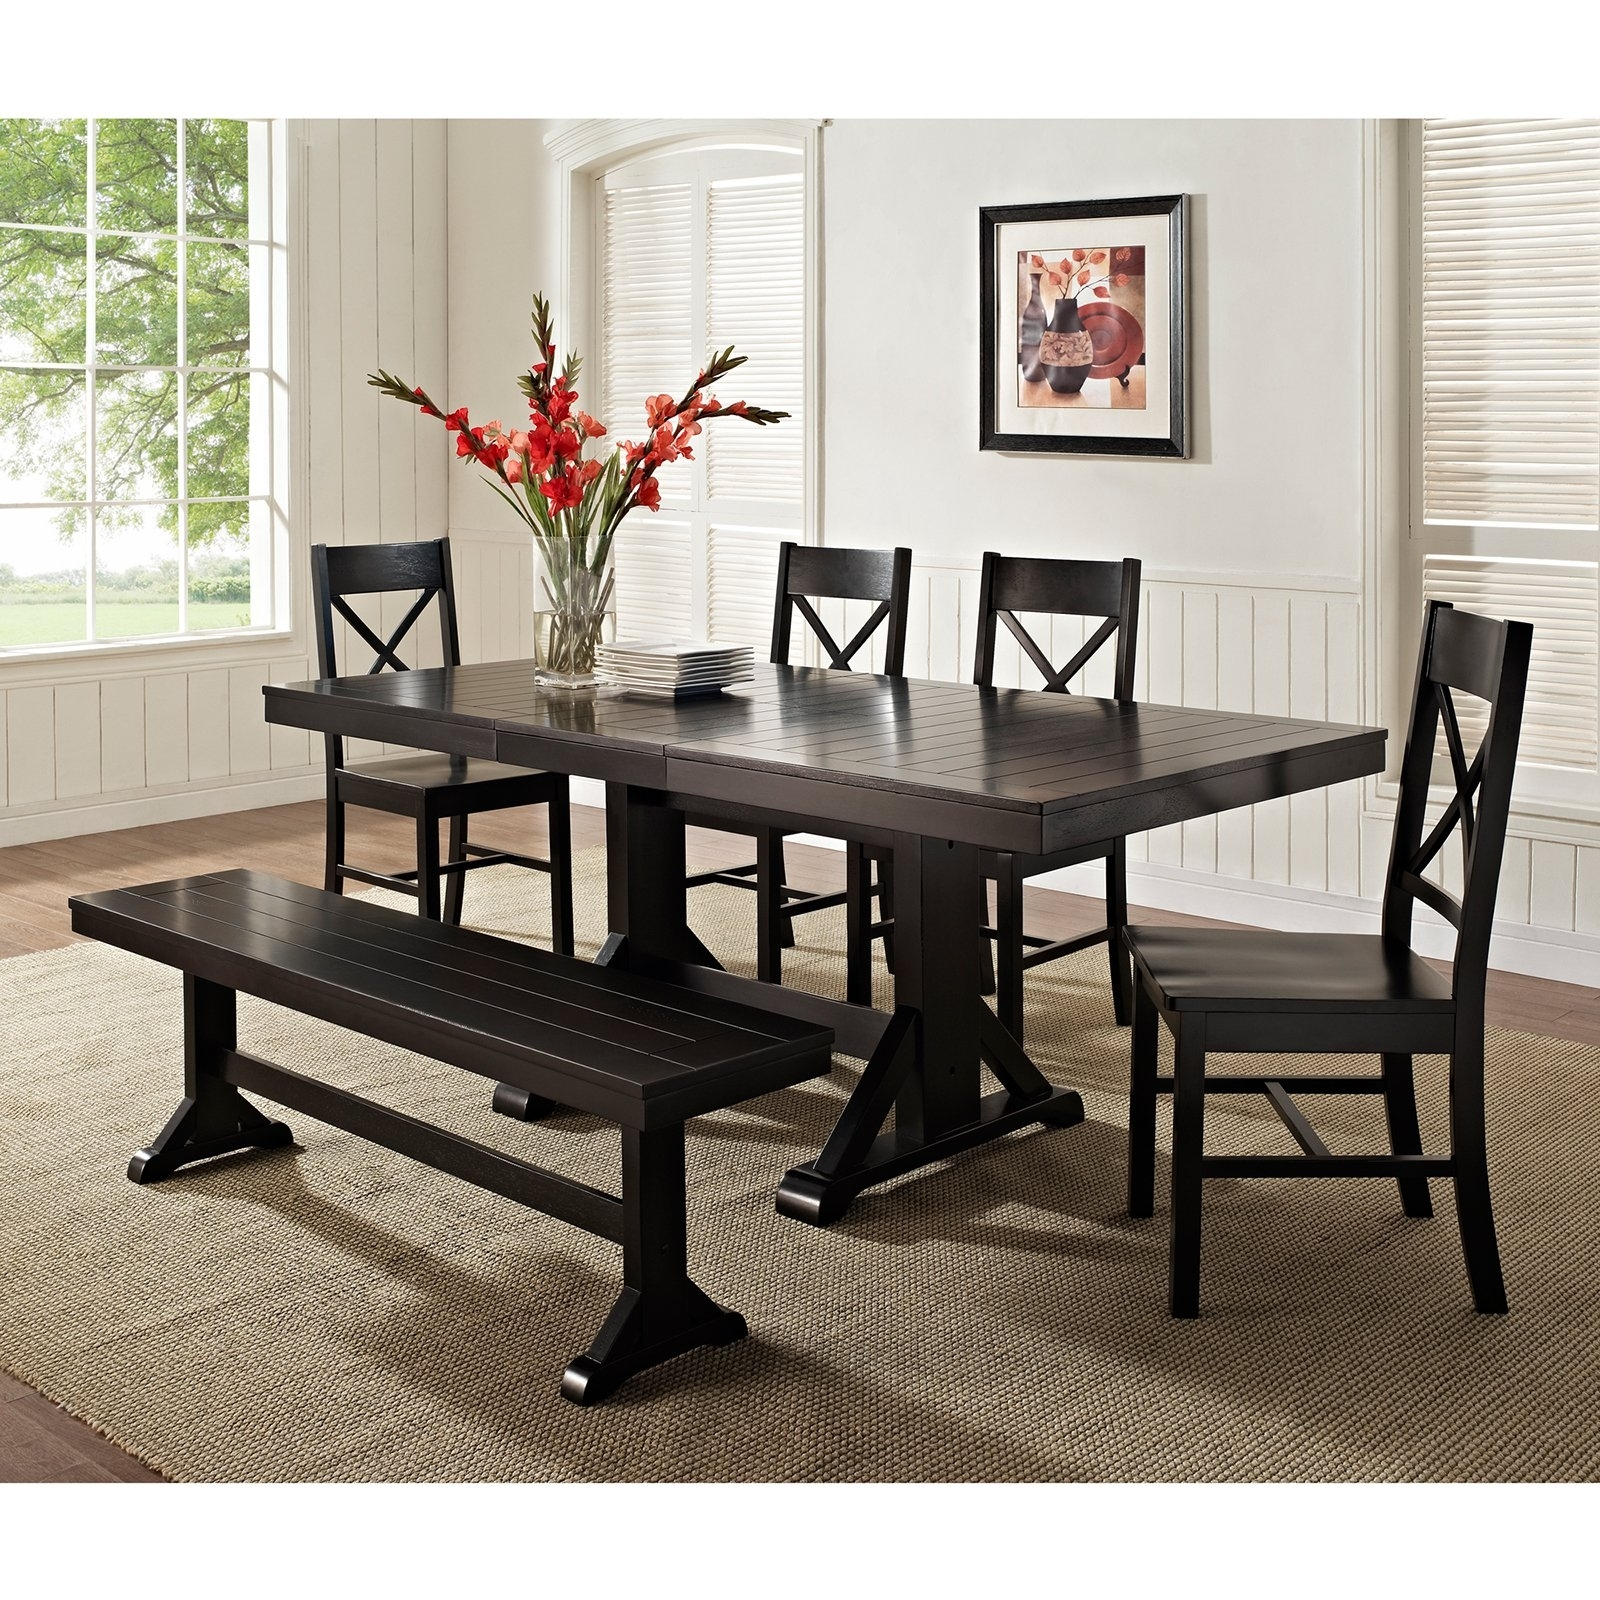 Most Recently Released Dark Wood Dining Tables 6 Chairs Pertaining To Walker Edison Black 6 Piece Solid Wood Dining Set With Bench (View 17 of 25)